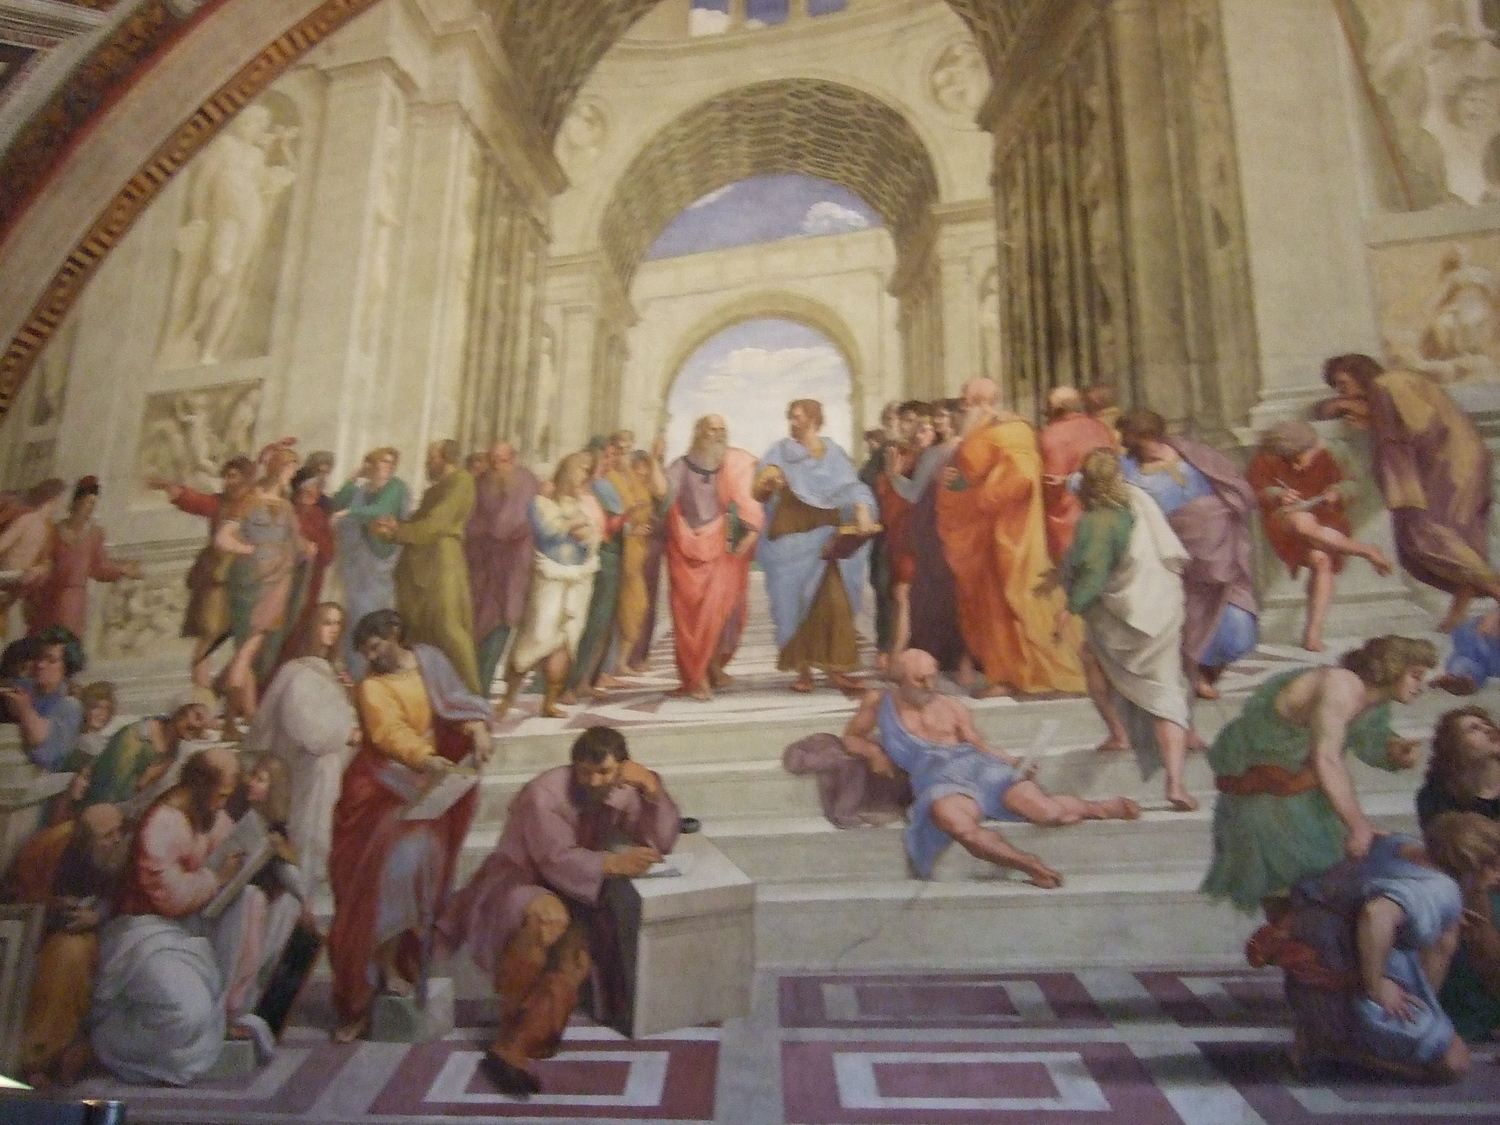 Museums in Rome. The Vatican City Museum: The School of Athens by Raphael